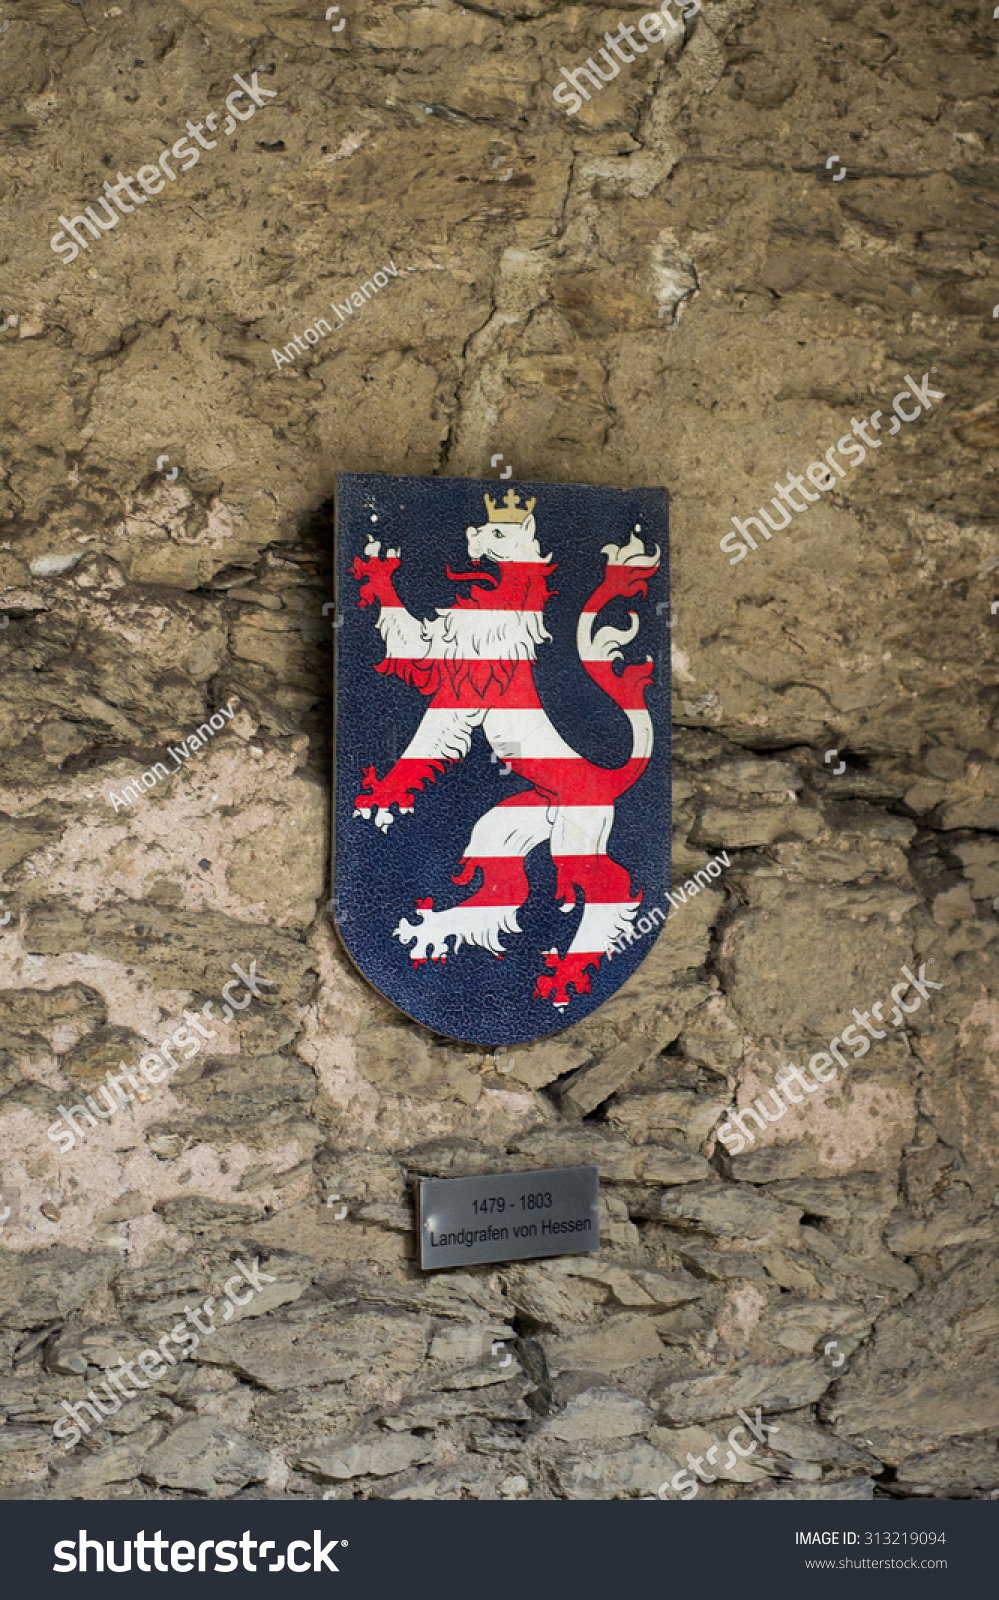 Braubach germany june 10 2015 old stock photo 313219094 shutterstock braubach germany june 10 2015 old german symbols in the marksburg castle biocorpaavc